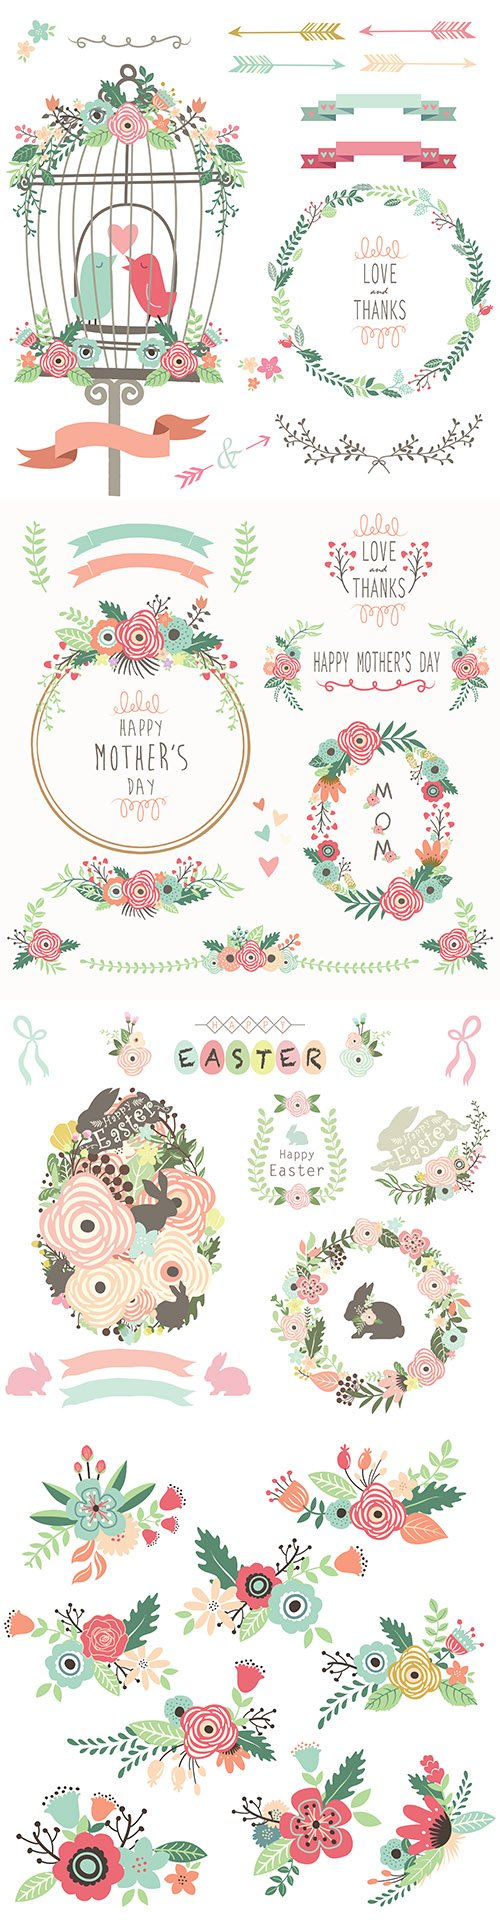 Easter, love bird cage and wedding bouquet retro painted design